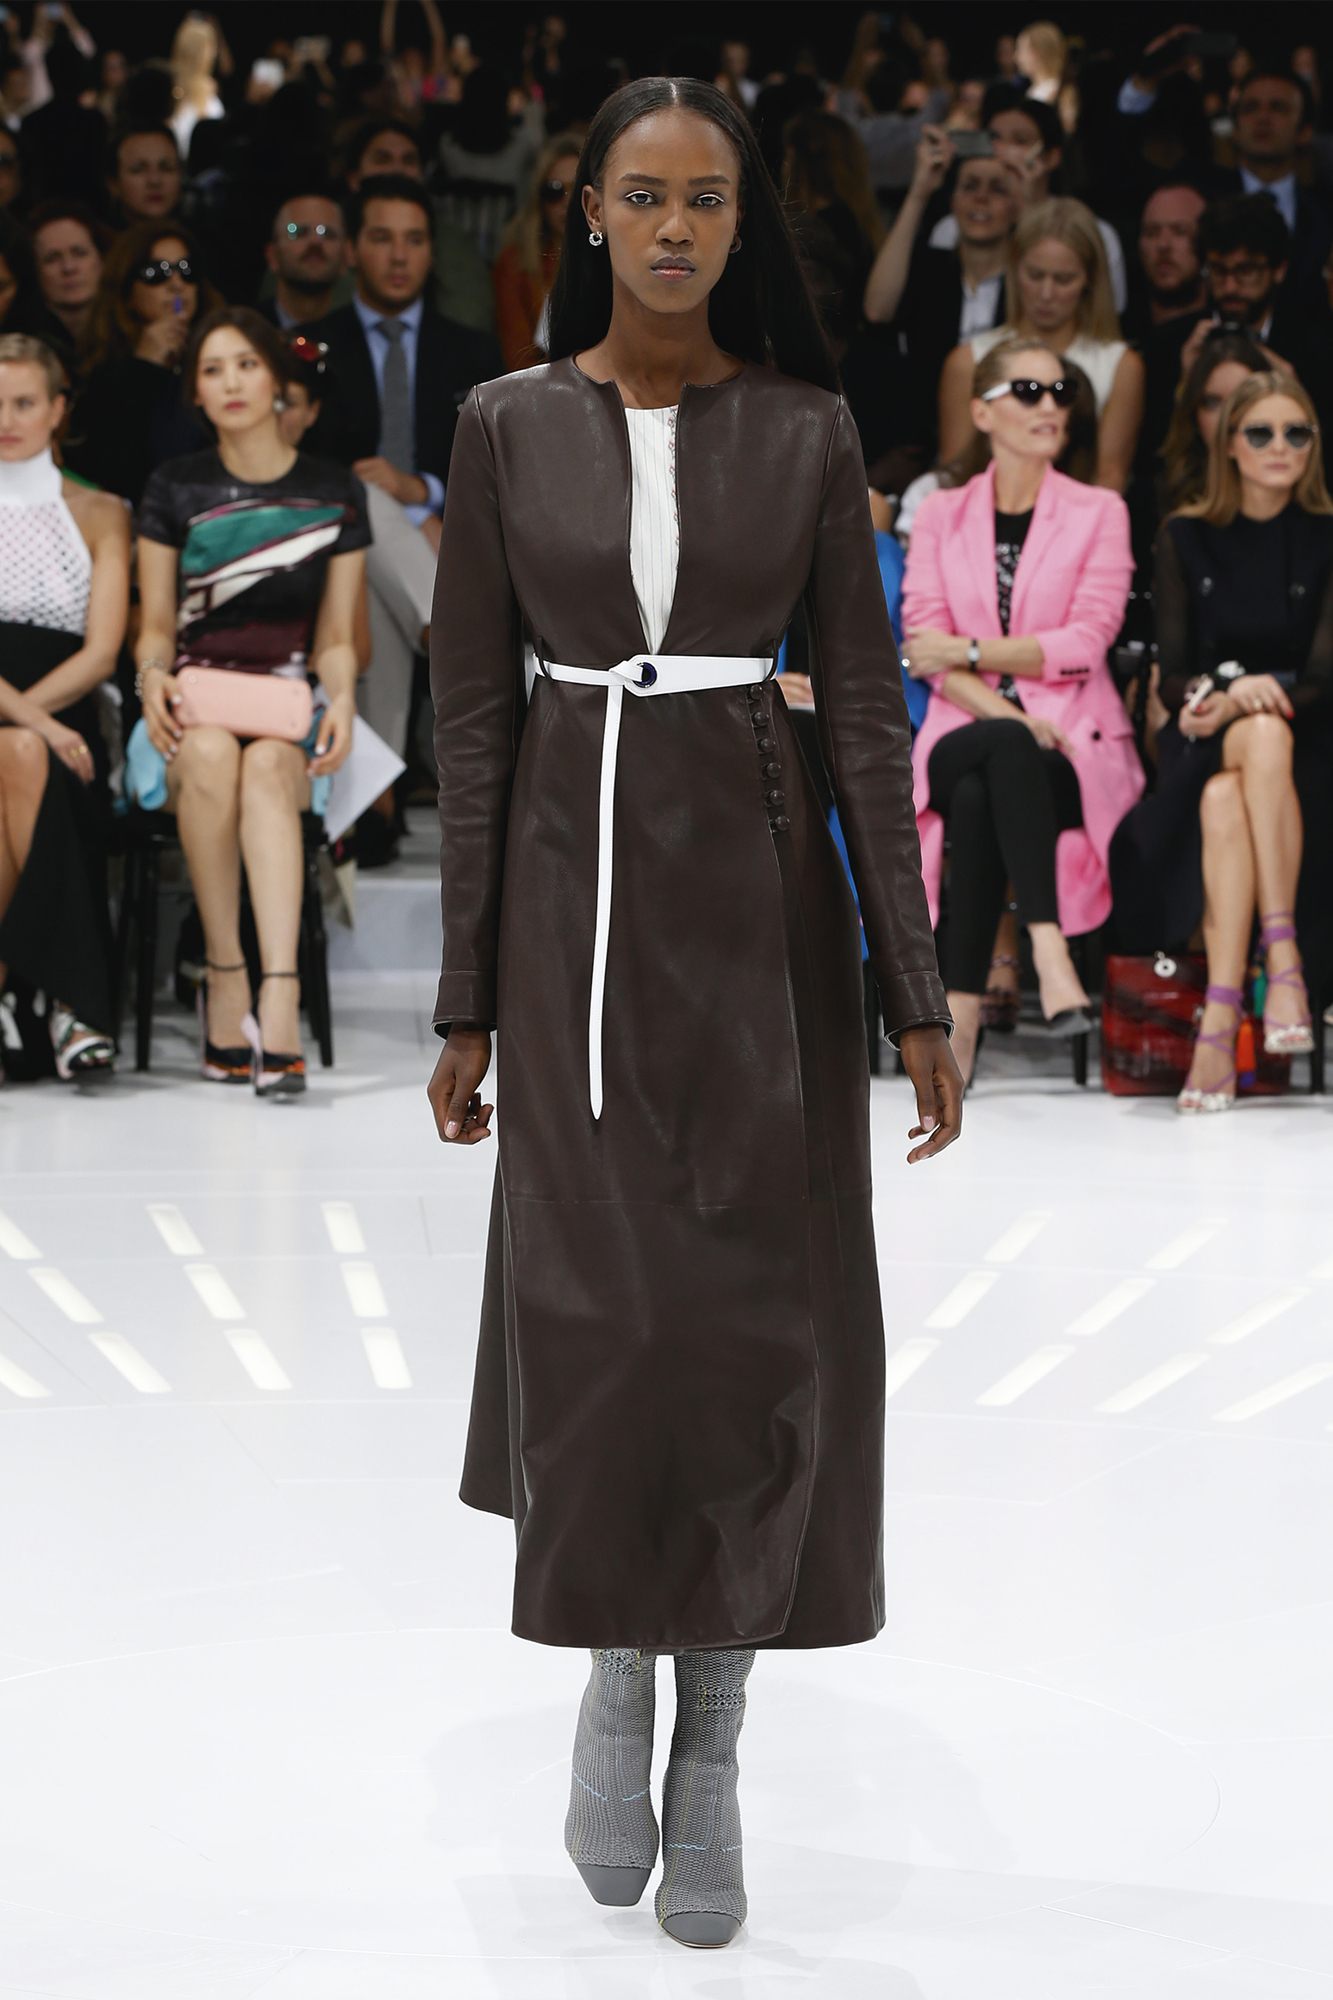 Christian Dior Haute Couture Spring-Summer Ready To Wear Dresses & Accessories Collection 2015-16 (15)